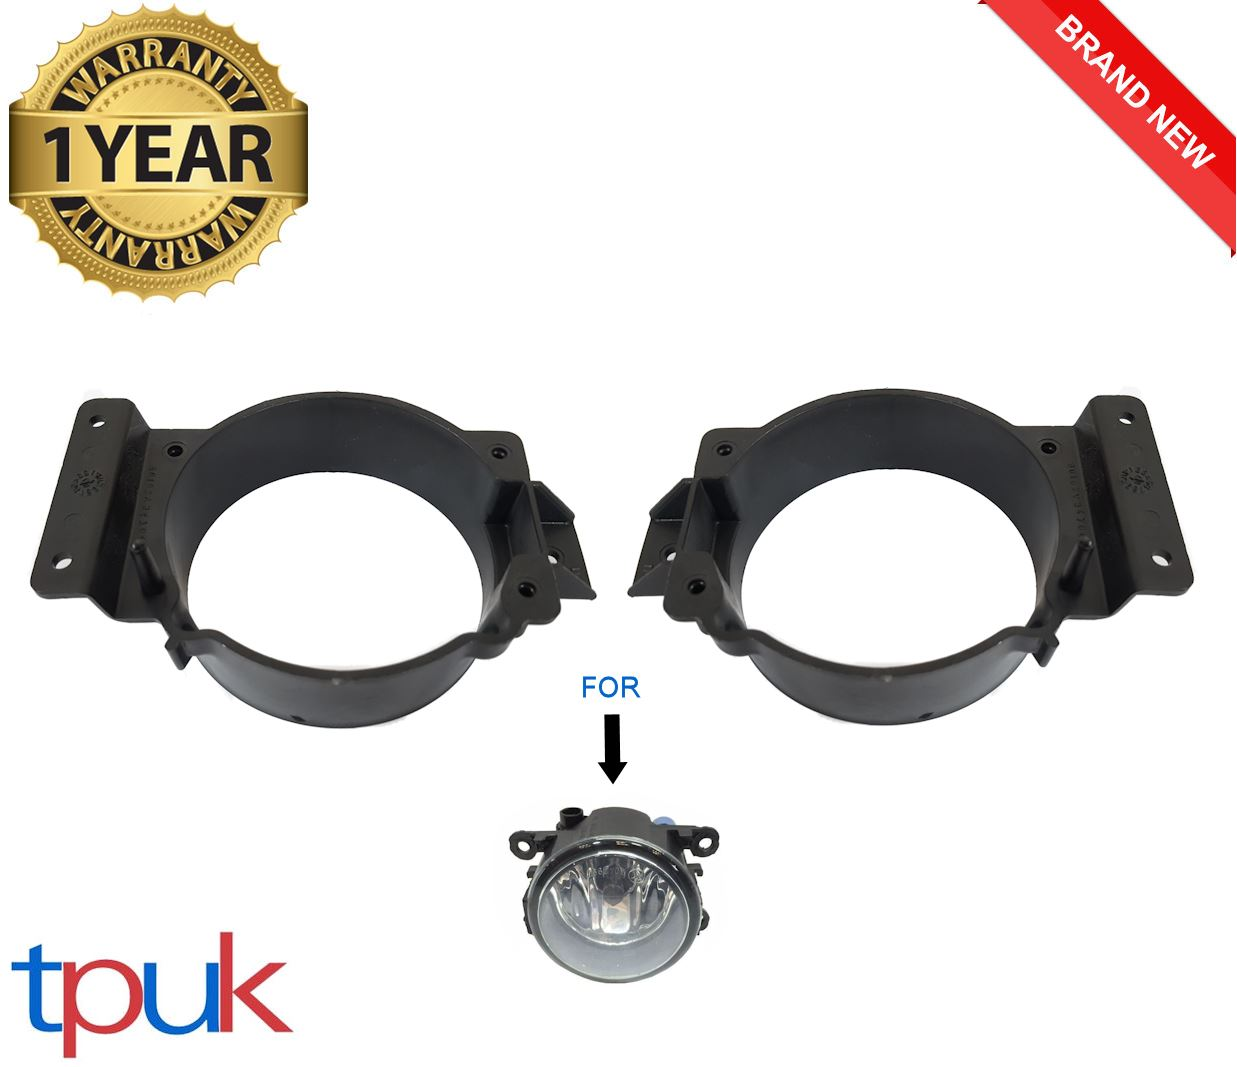 Eastar 1 Pair Gray Front Fog Light Lamp Bracket Fit For Ford Transit Mk7 2006-2014